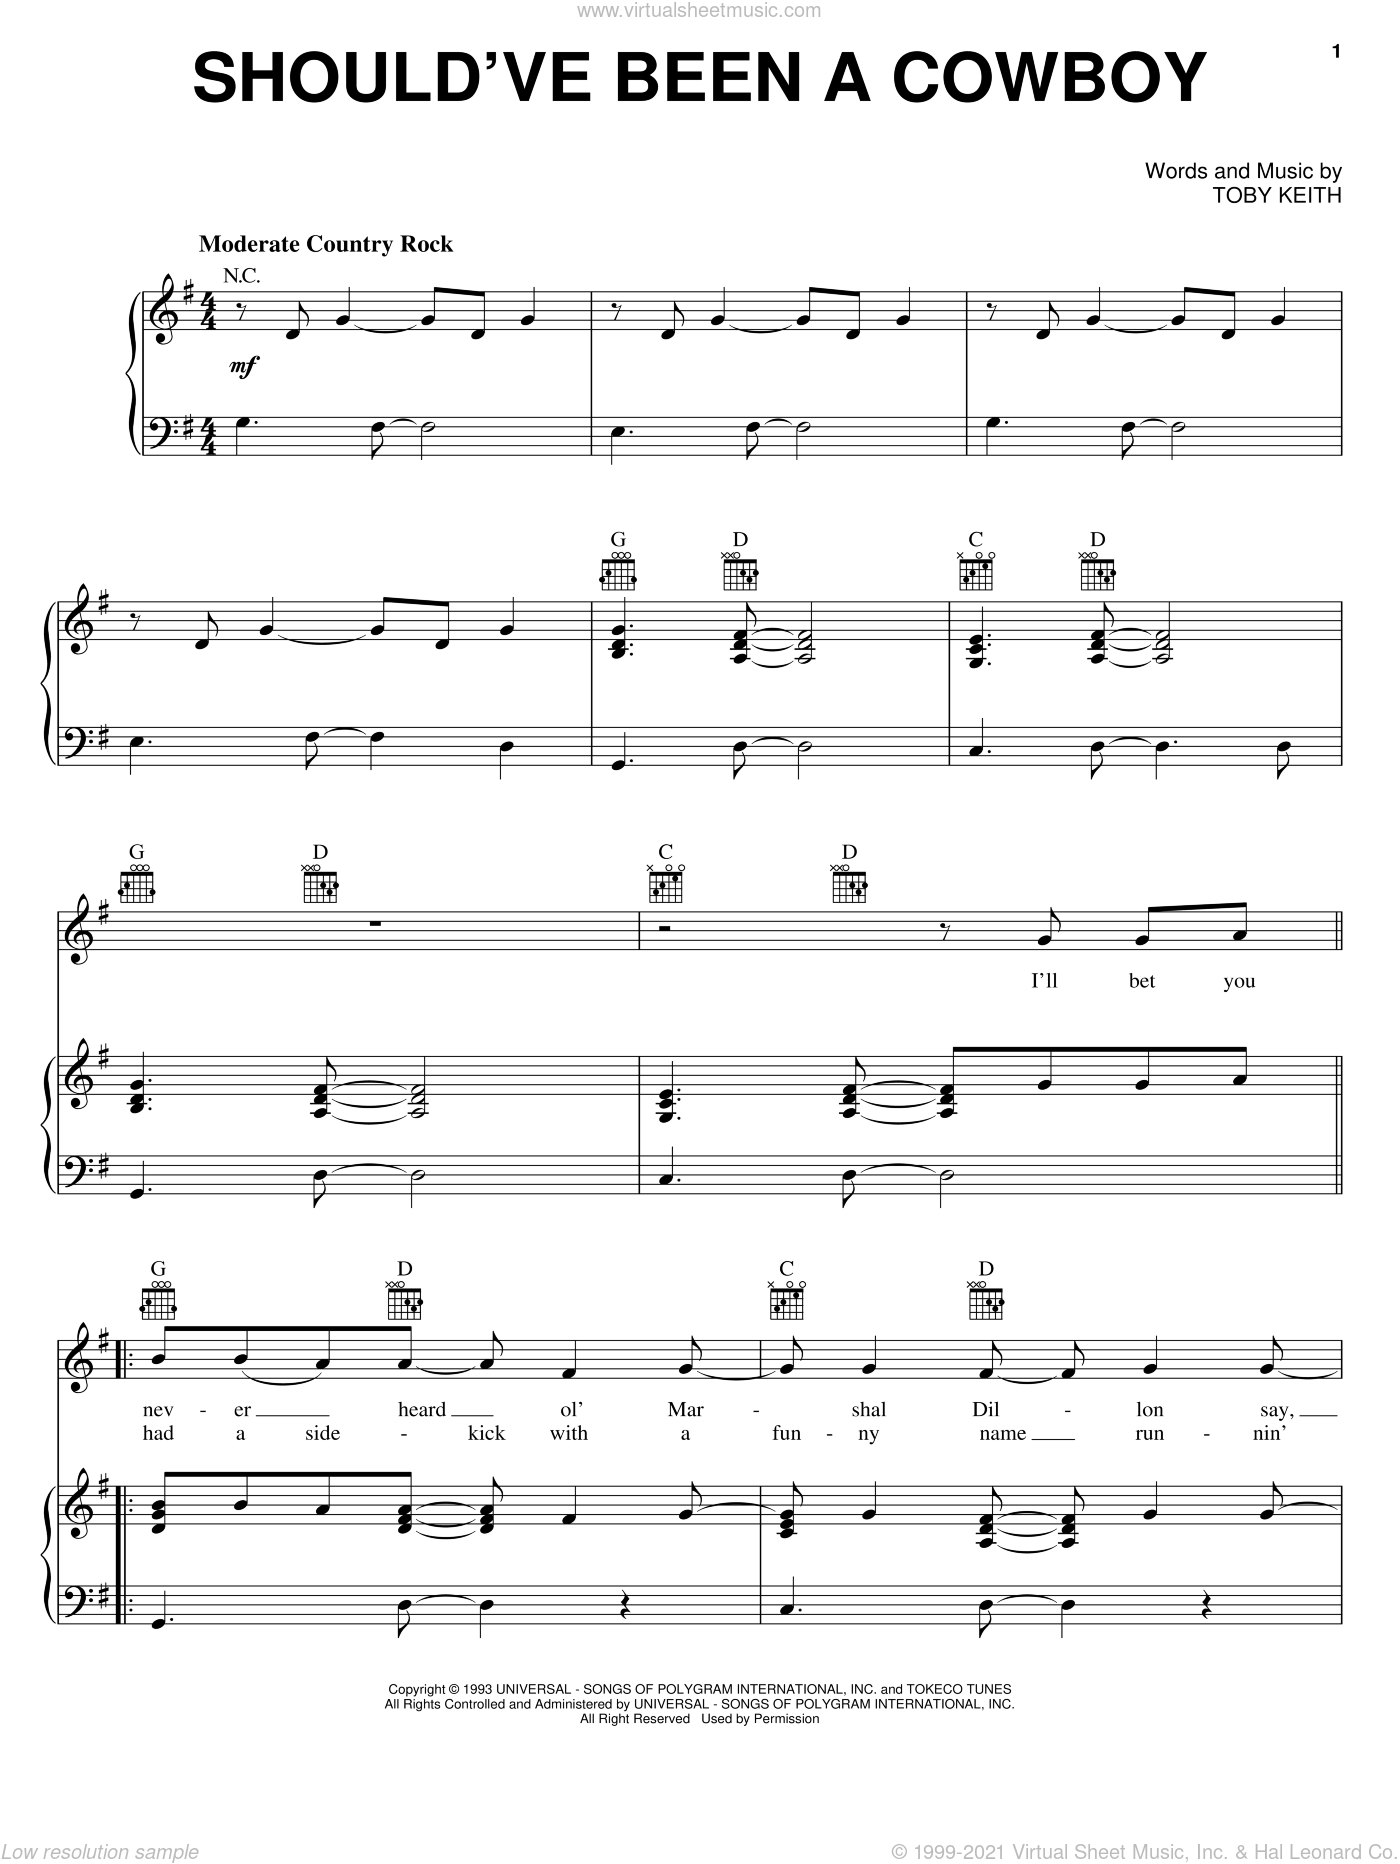 Should've Been A Cowboy sheet music for voice, piano or guitar by Toby Keith